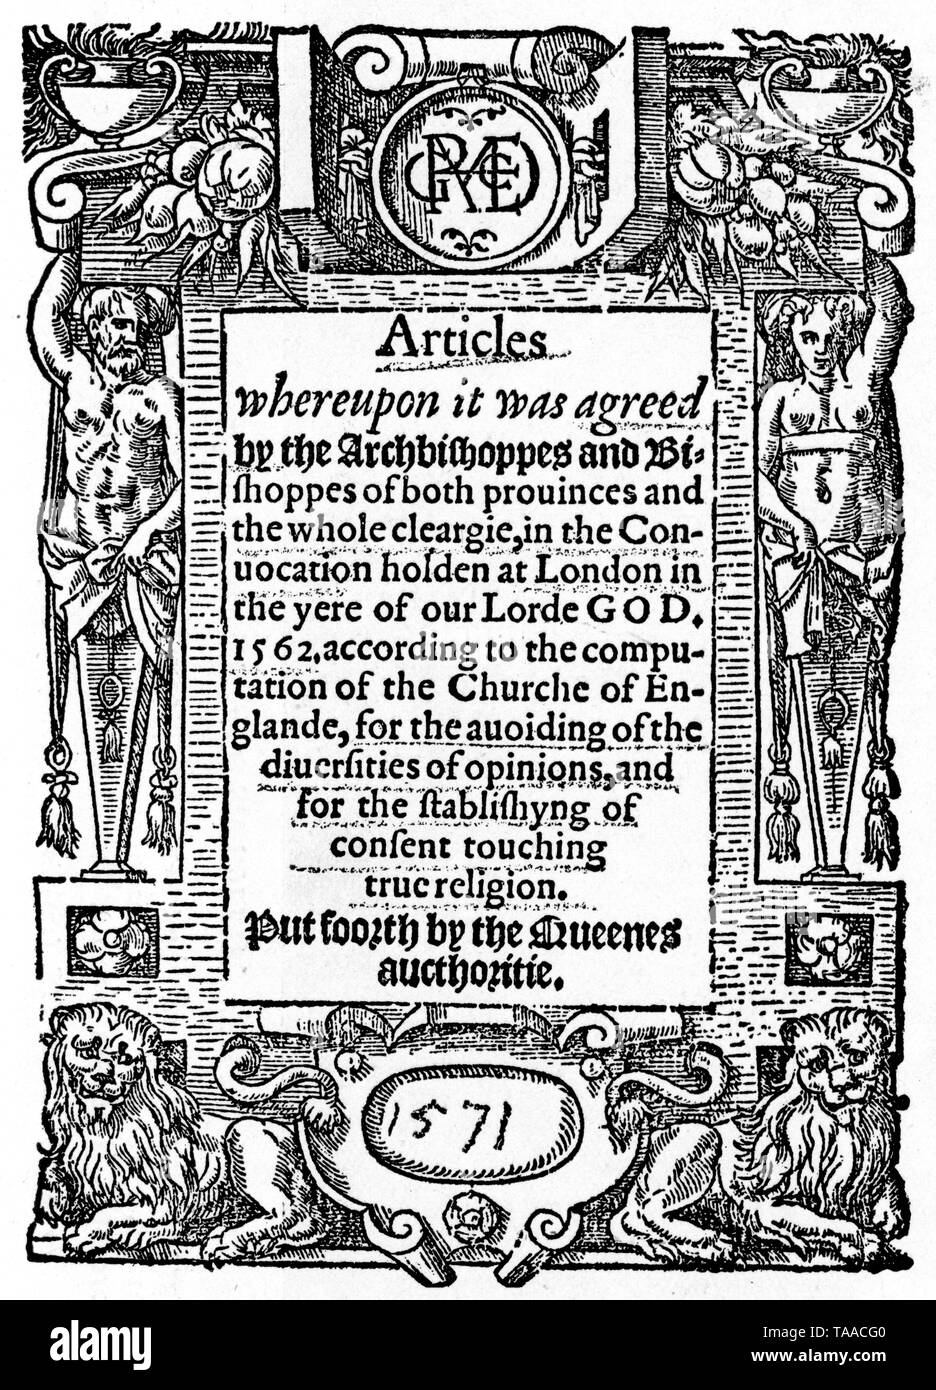 Title page of the 'Thirty Nine Articles, 1571. The 'Thirty-Nine Articles of Religion' define the doctrine of the Church of England as it related to Calvinist doctrine and Roman Catholic practice. It was a result of the controversies that had sorrounded the English Reformation. - Stock Image